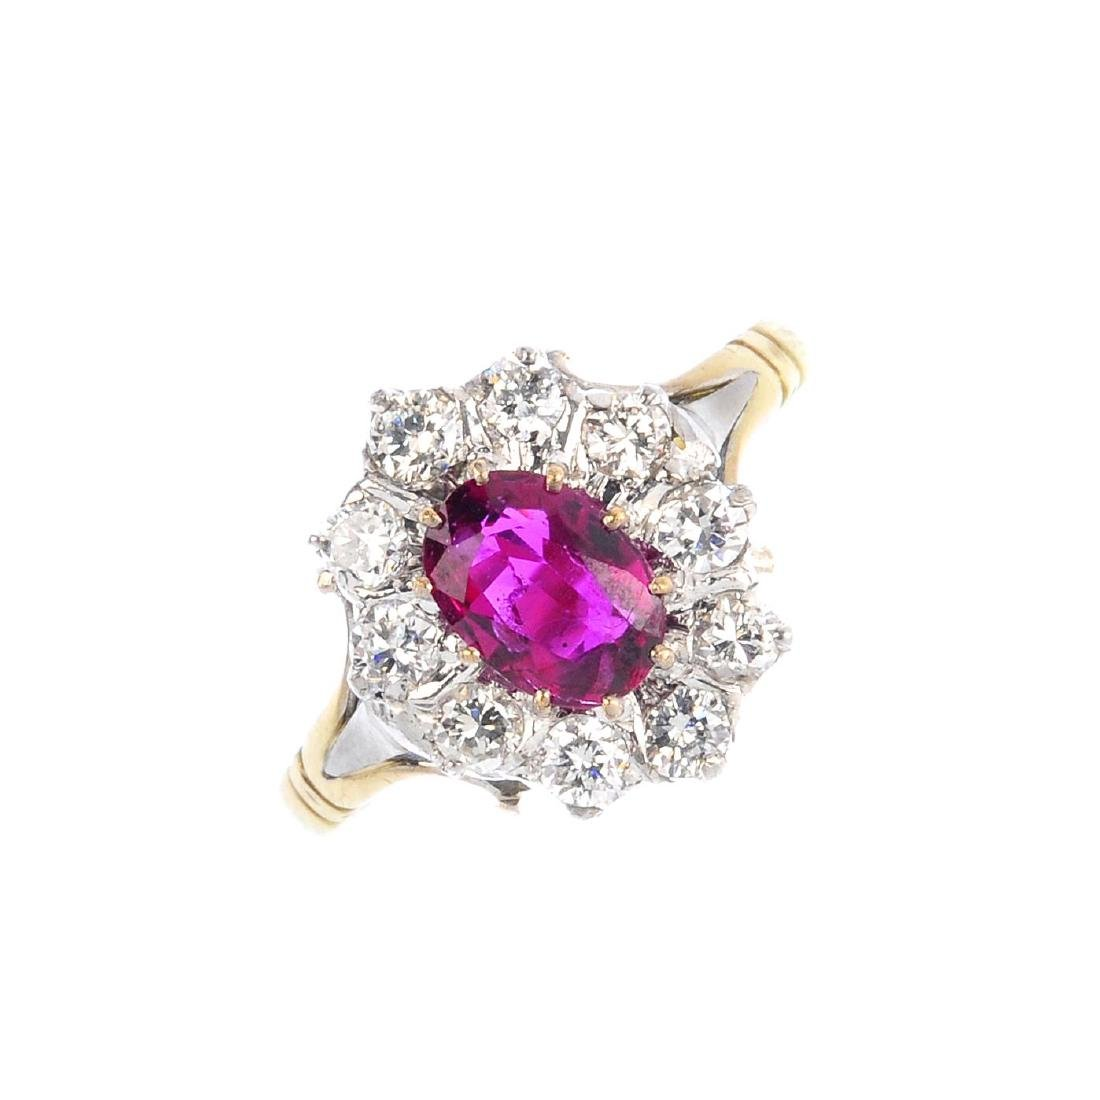 A Thai ruby and diamond cluster ring. The oval-shape